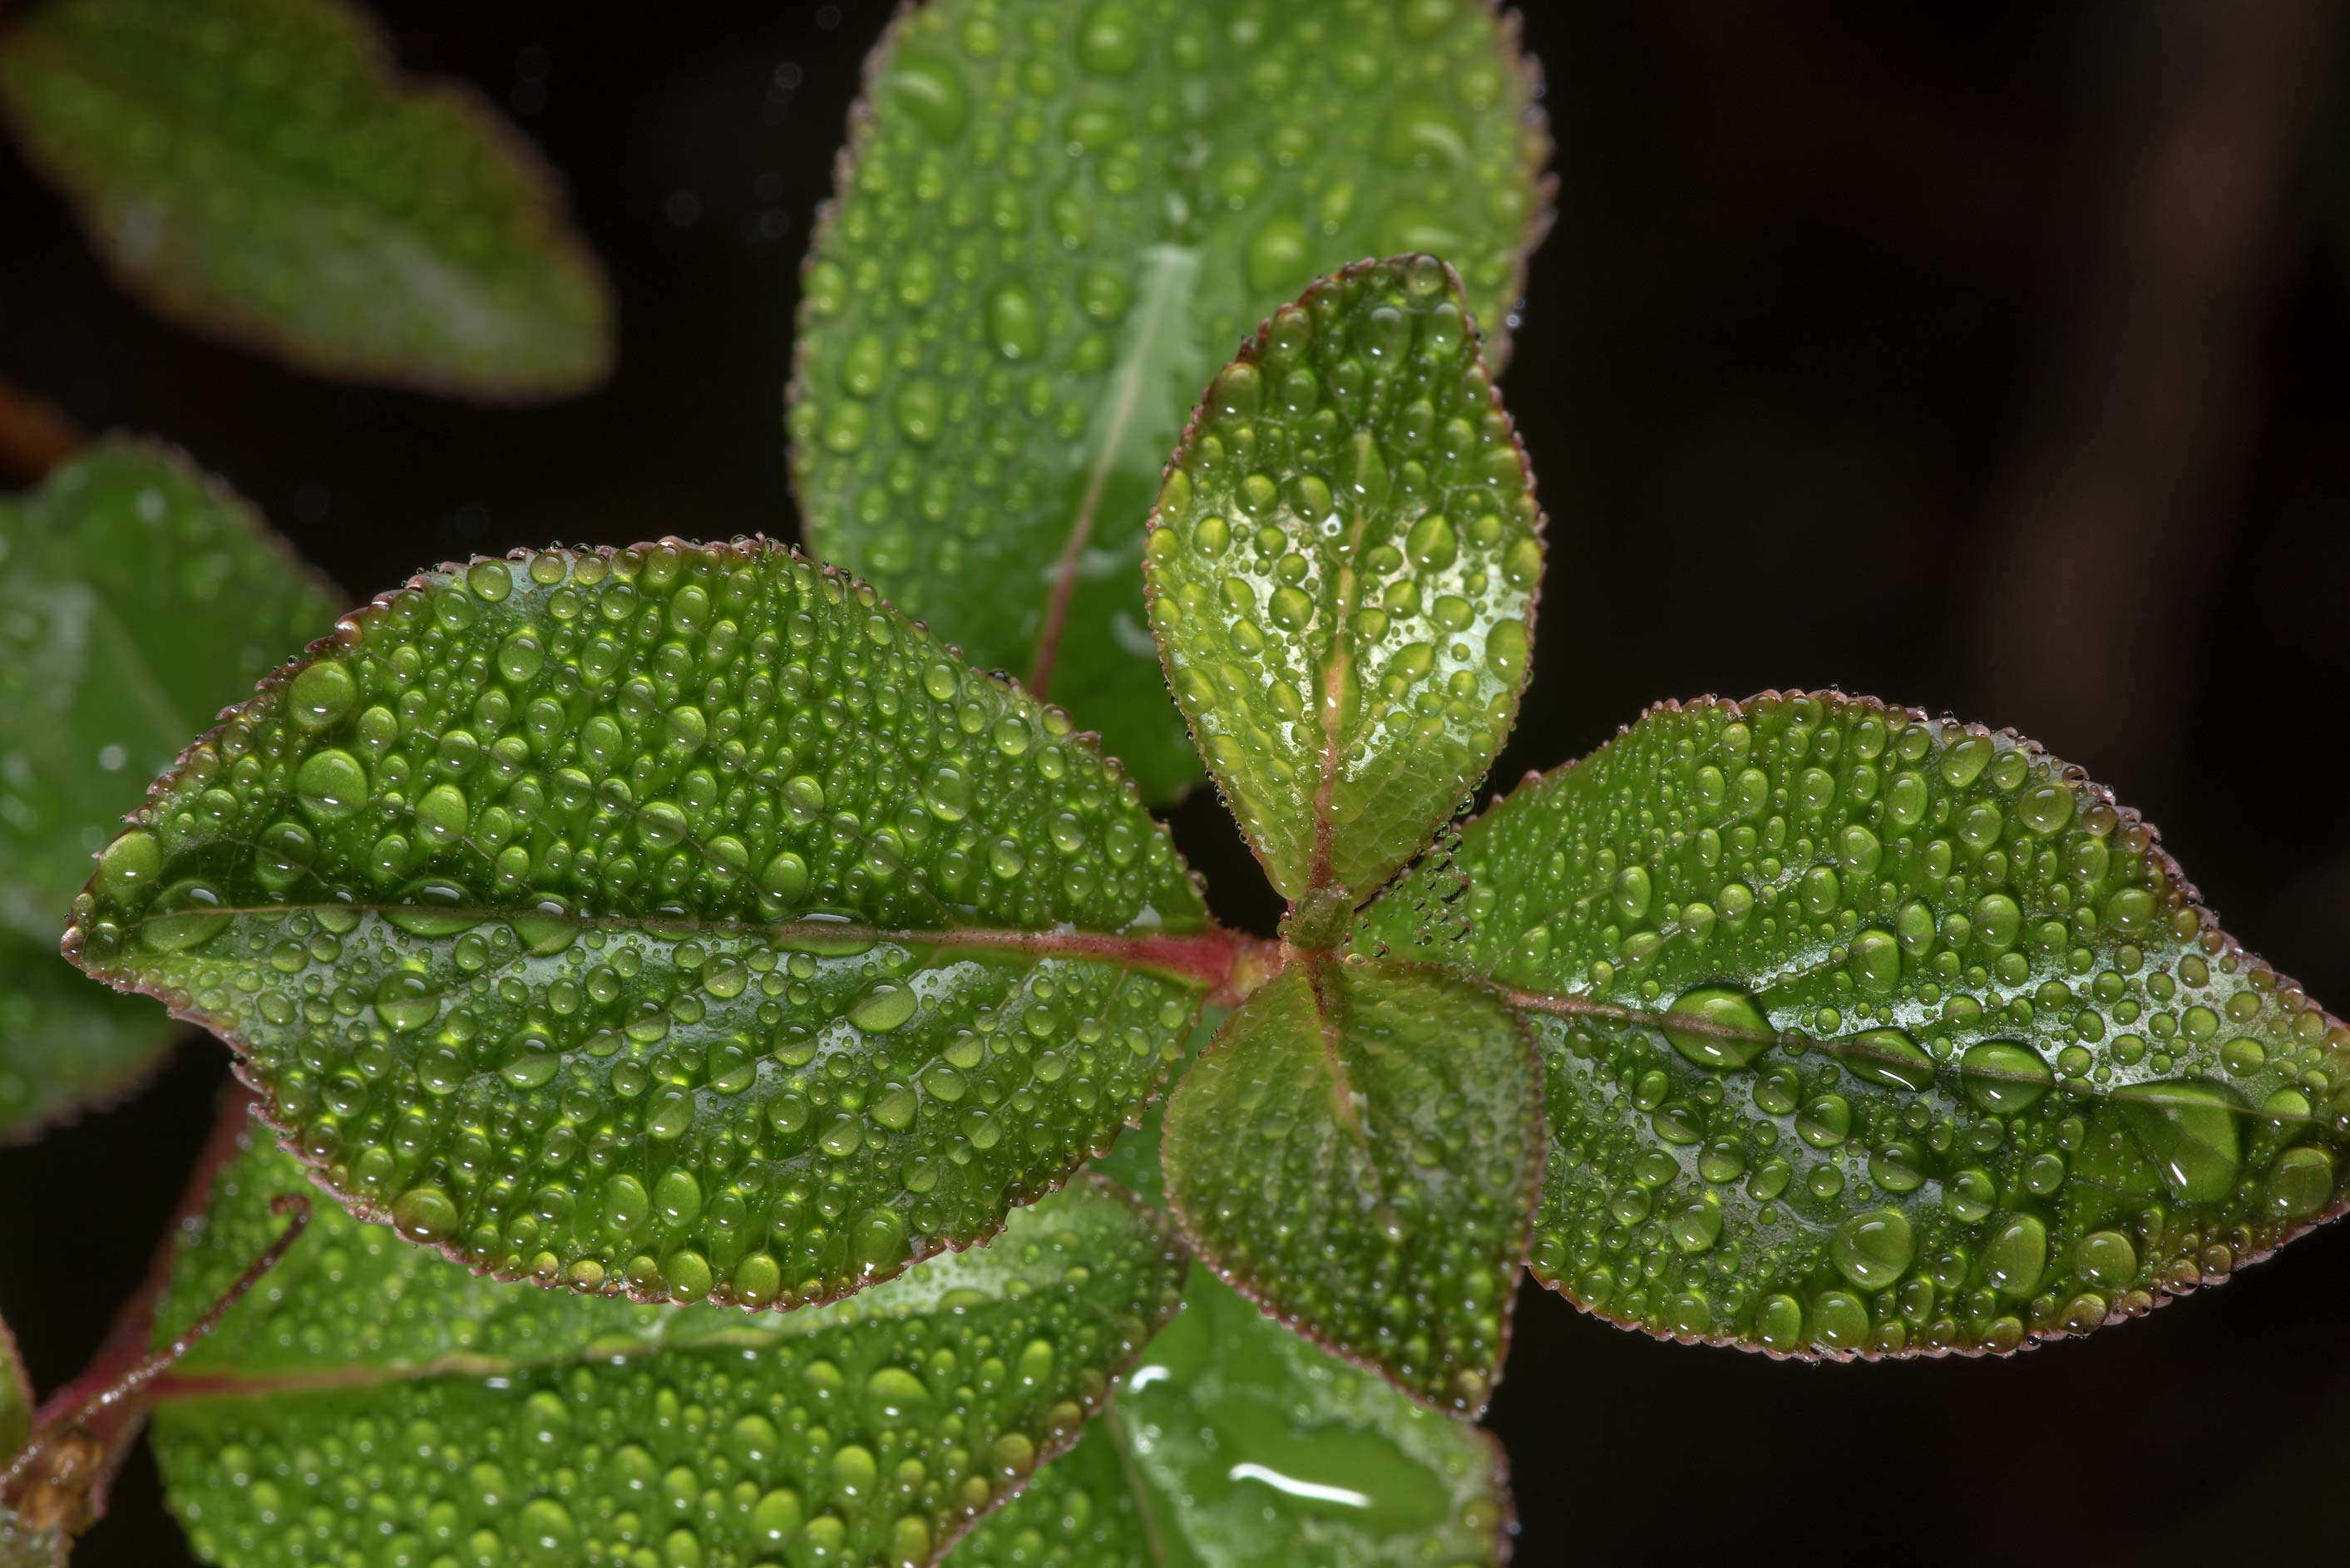 Some fresh leaves in dew in Lick Creek Park. College Station, Texas